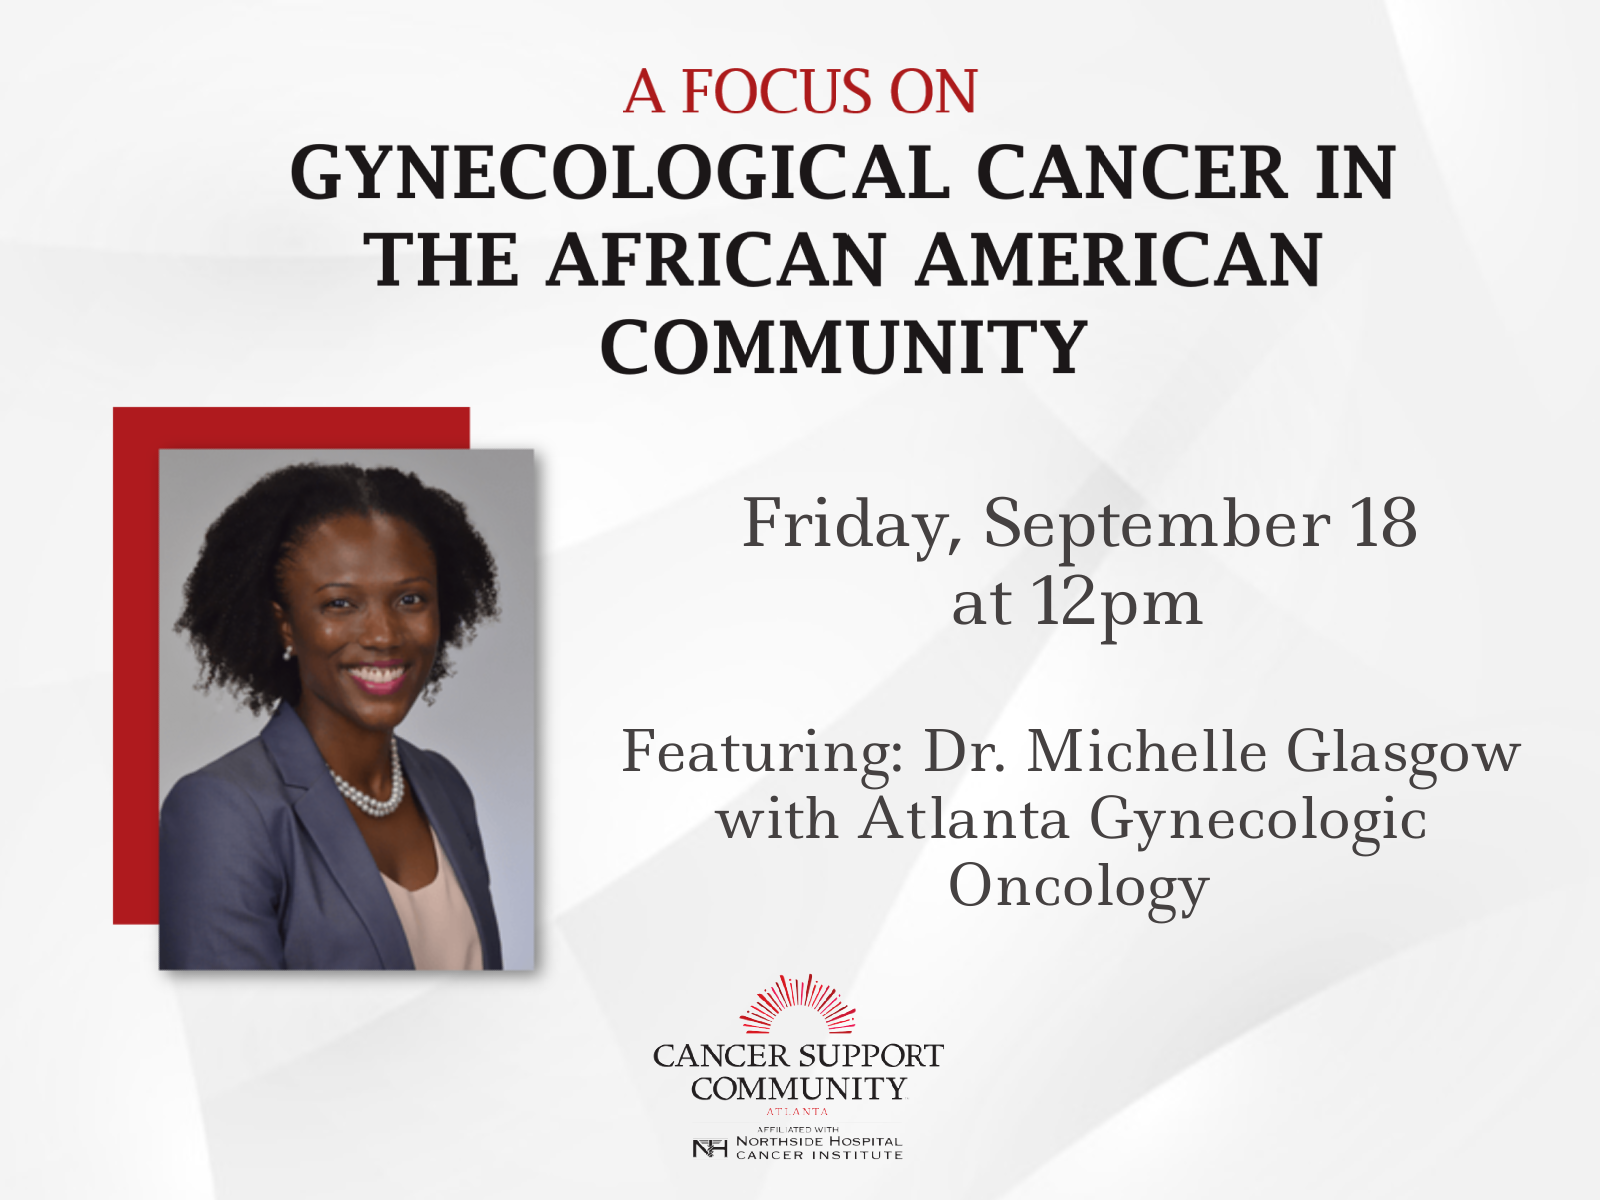 A Focus on Gynecological Cancer in the African American Community